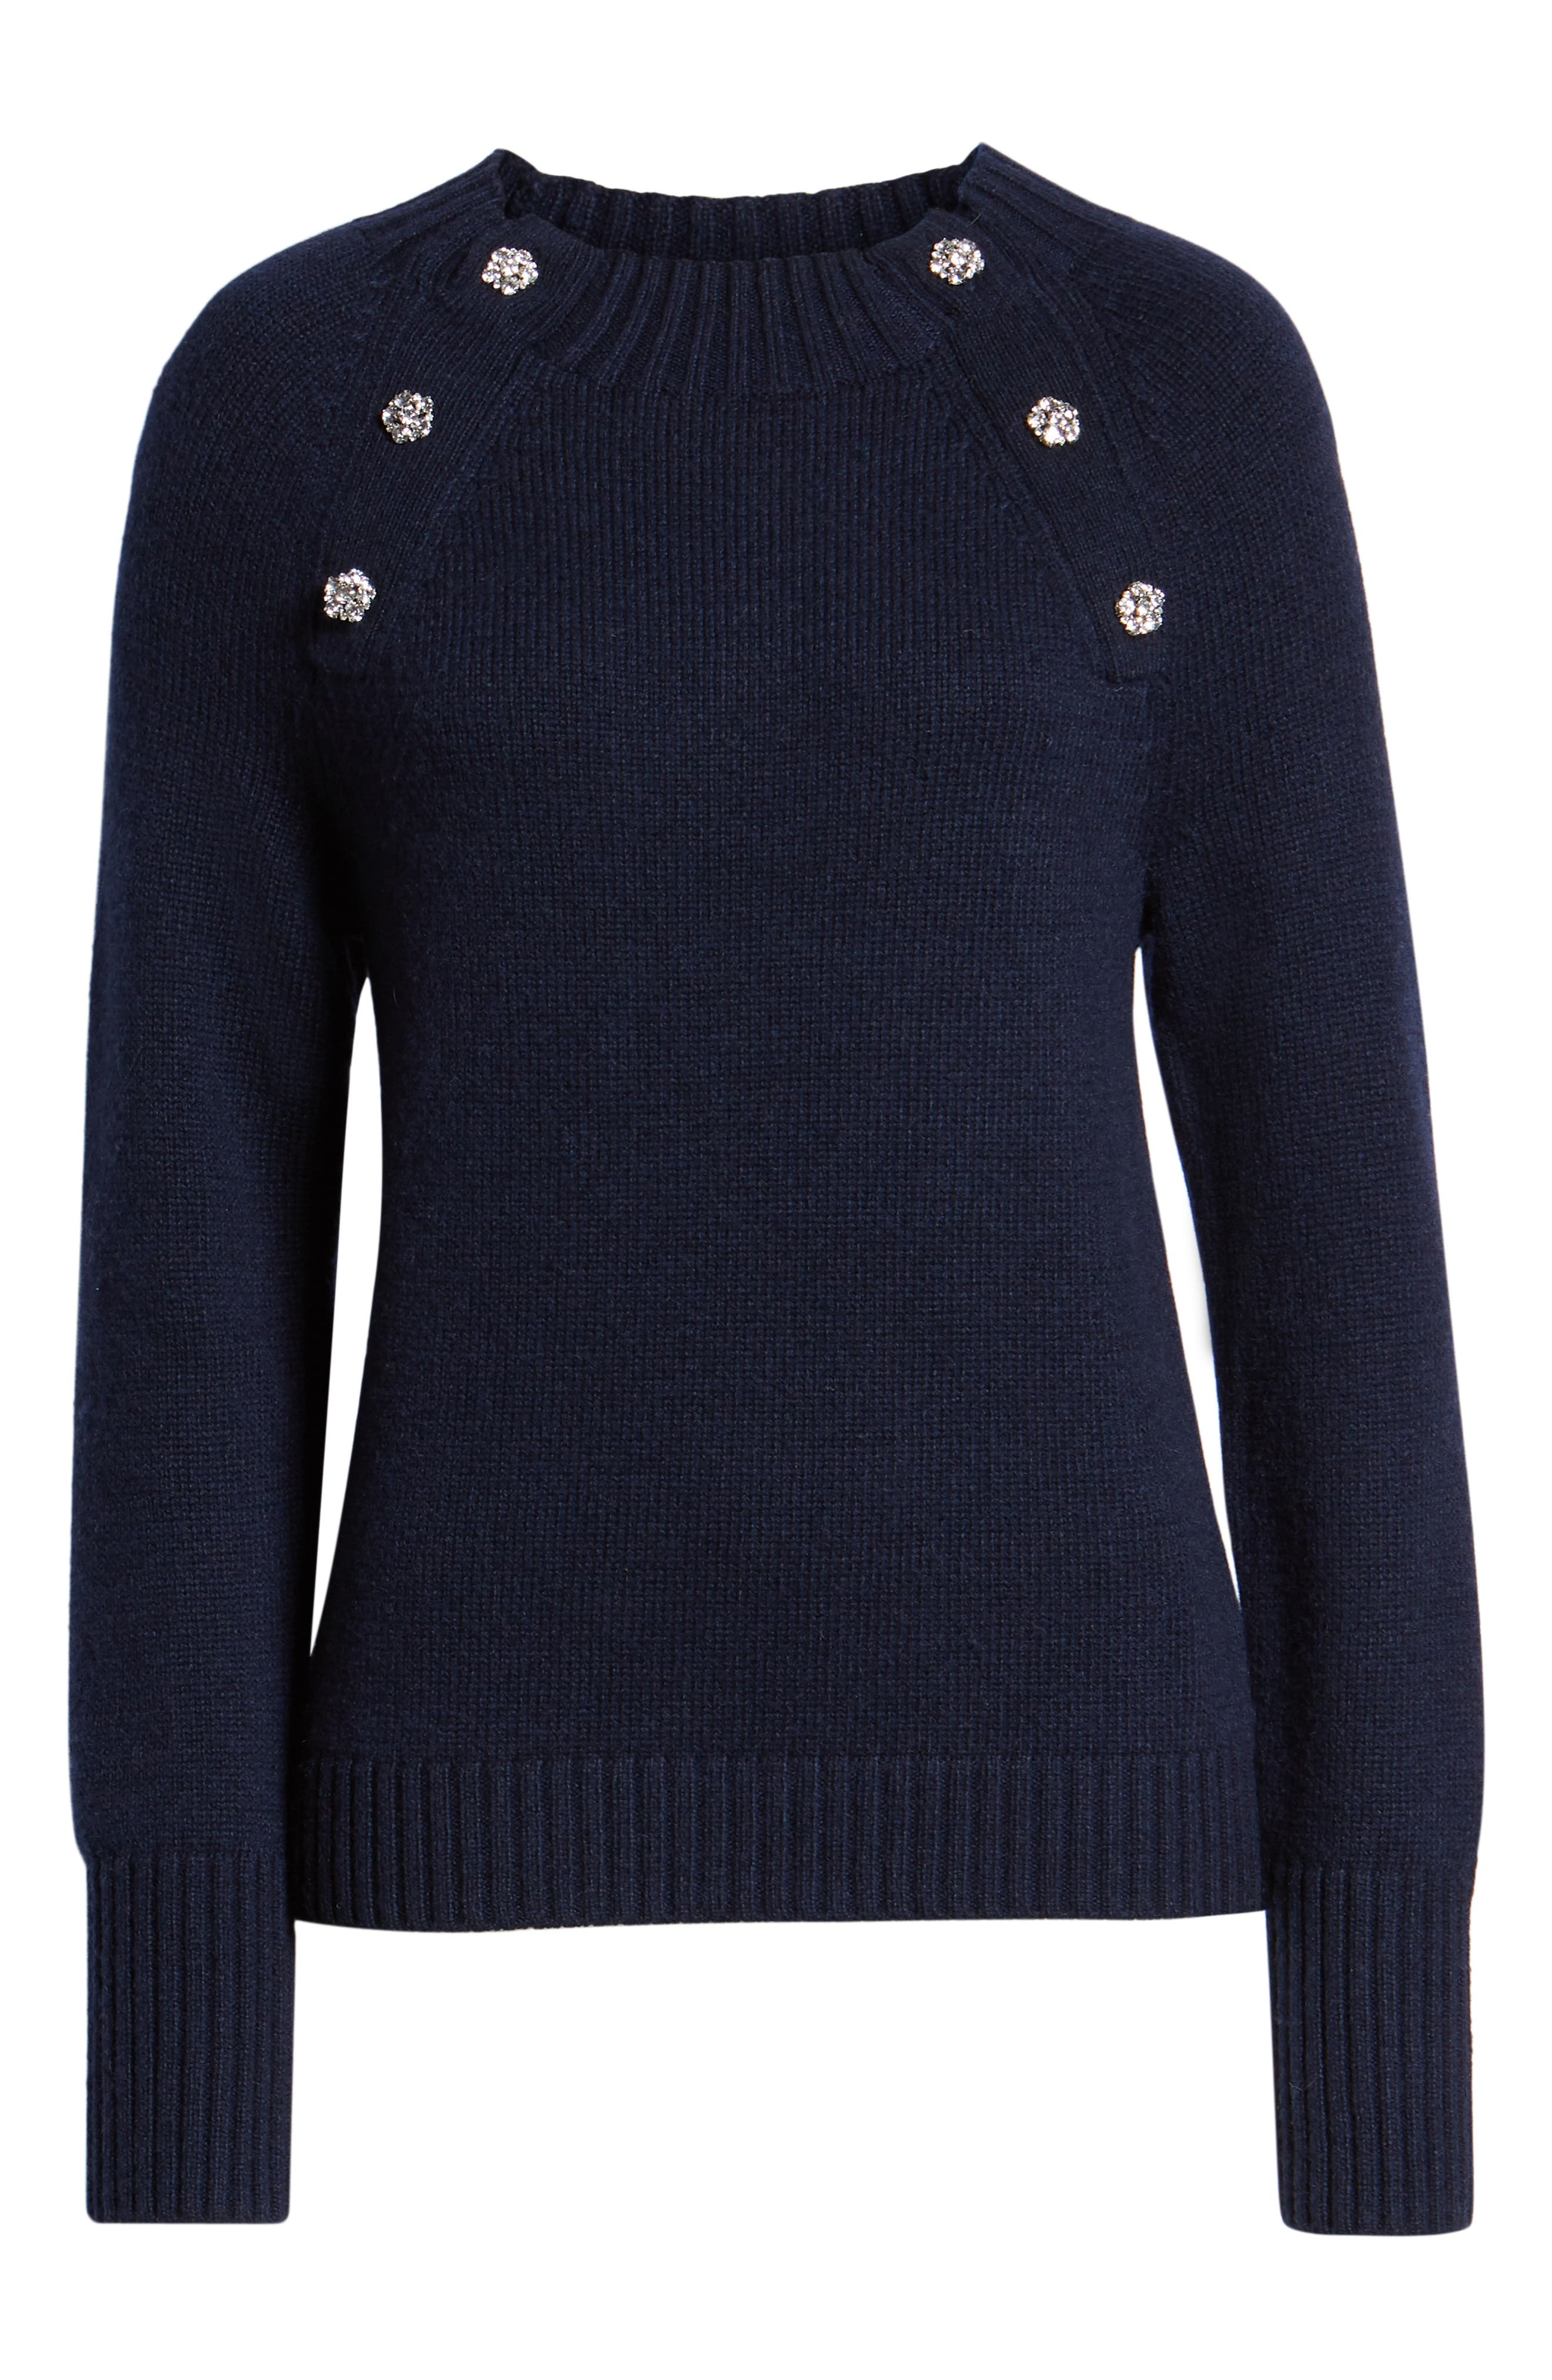 Sweater with Jeweled Buttons,                             Alternate thumbnail 6, color,                             NAVY